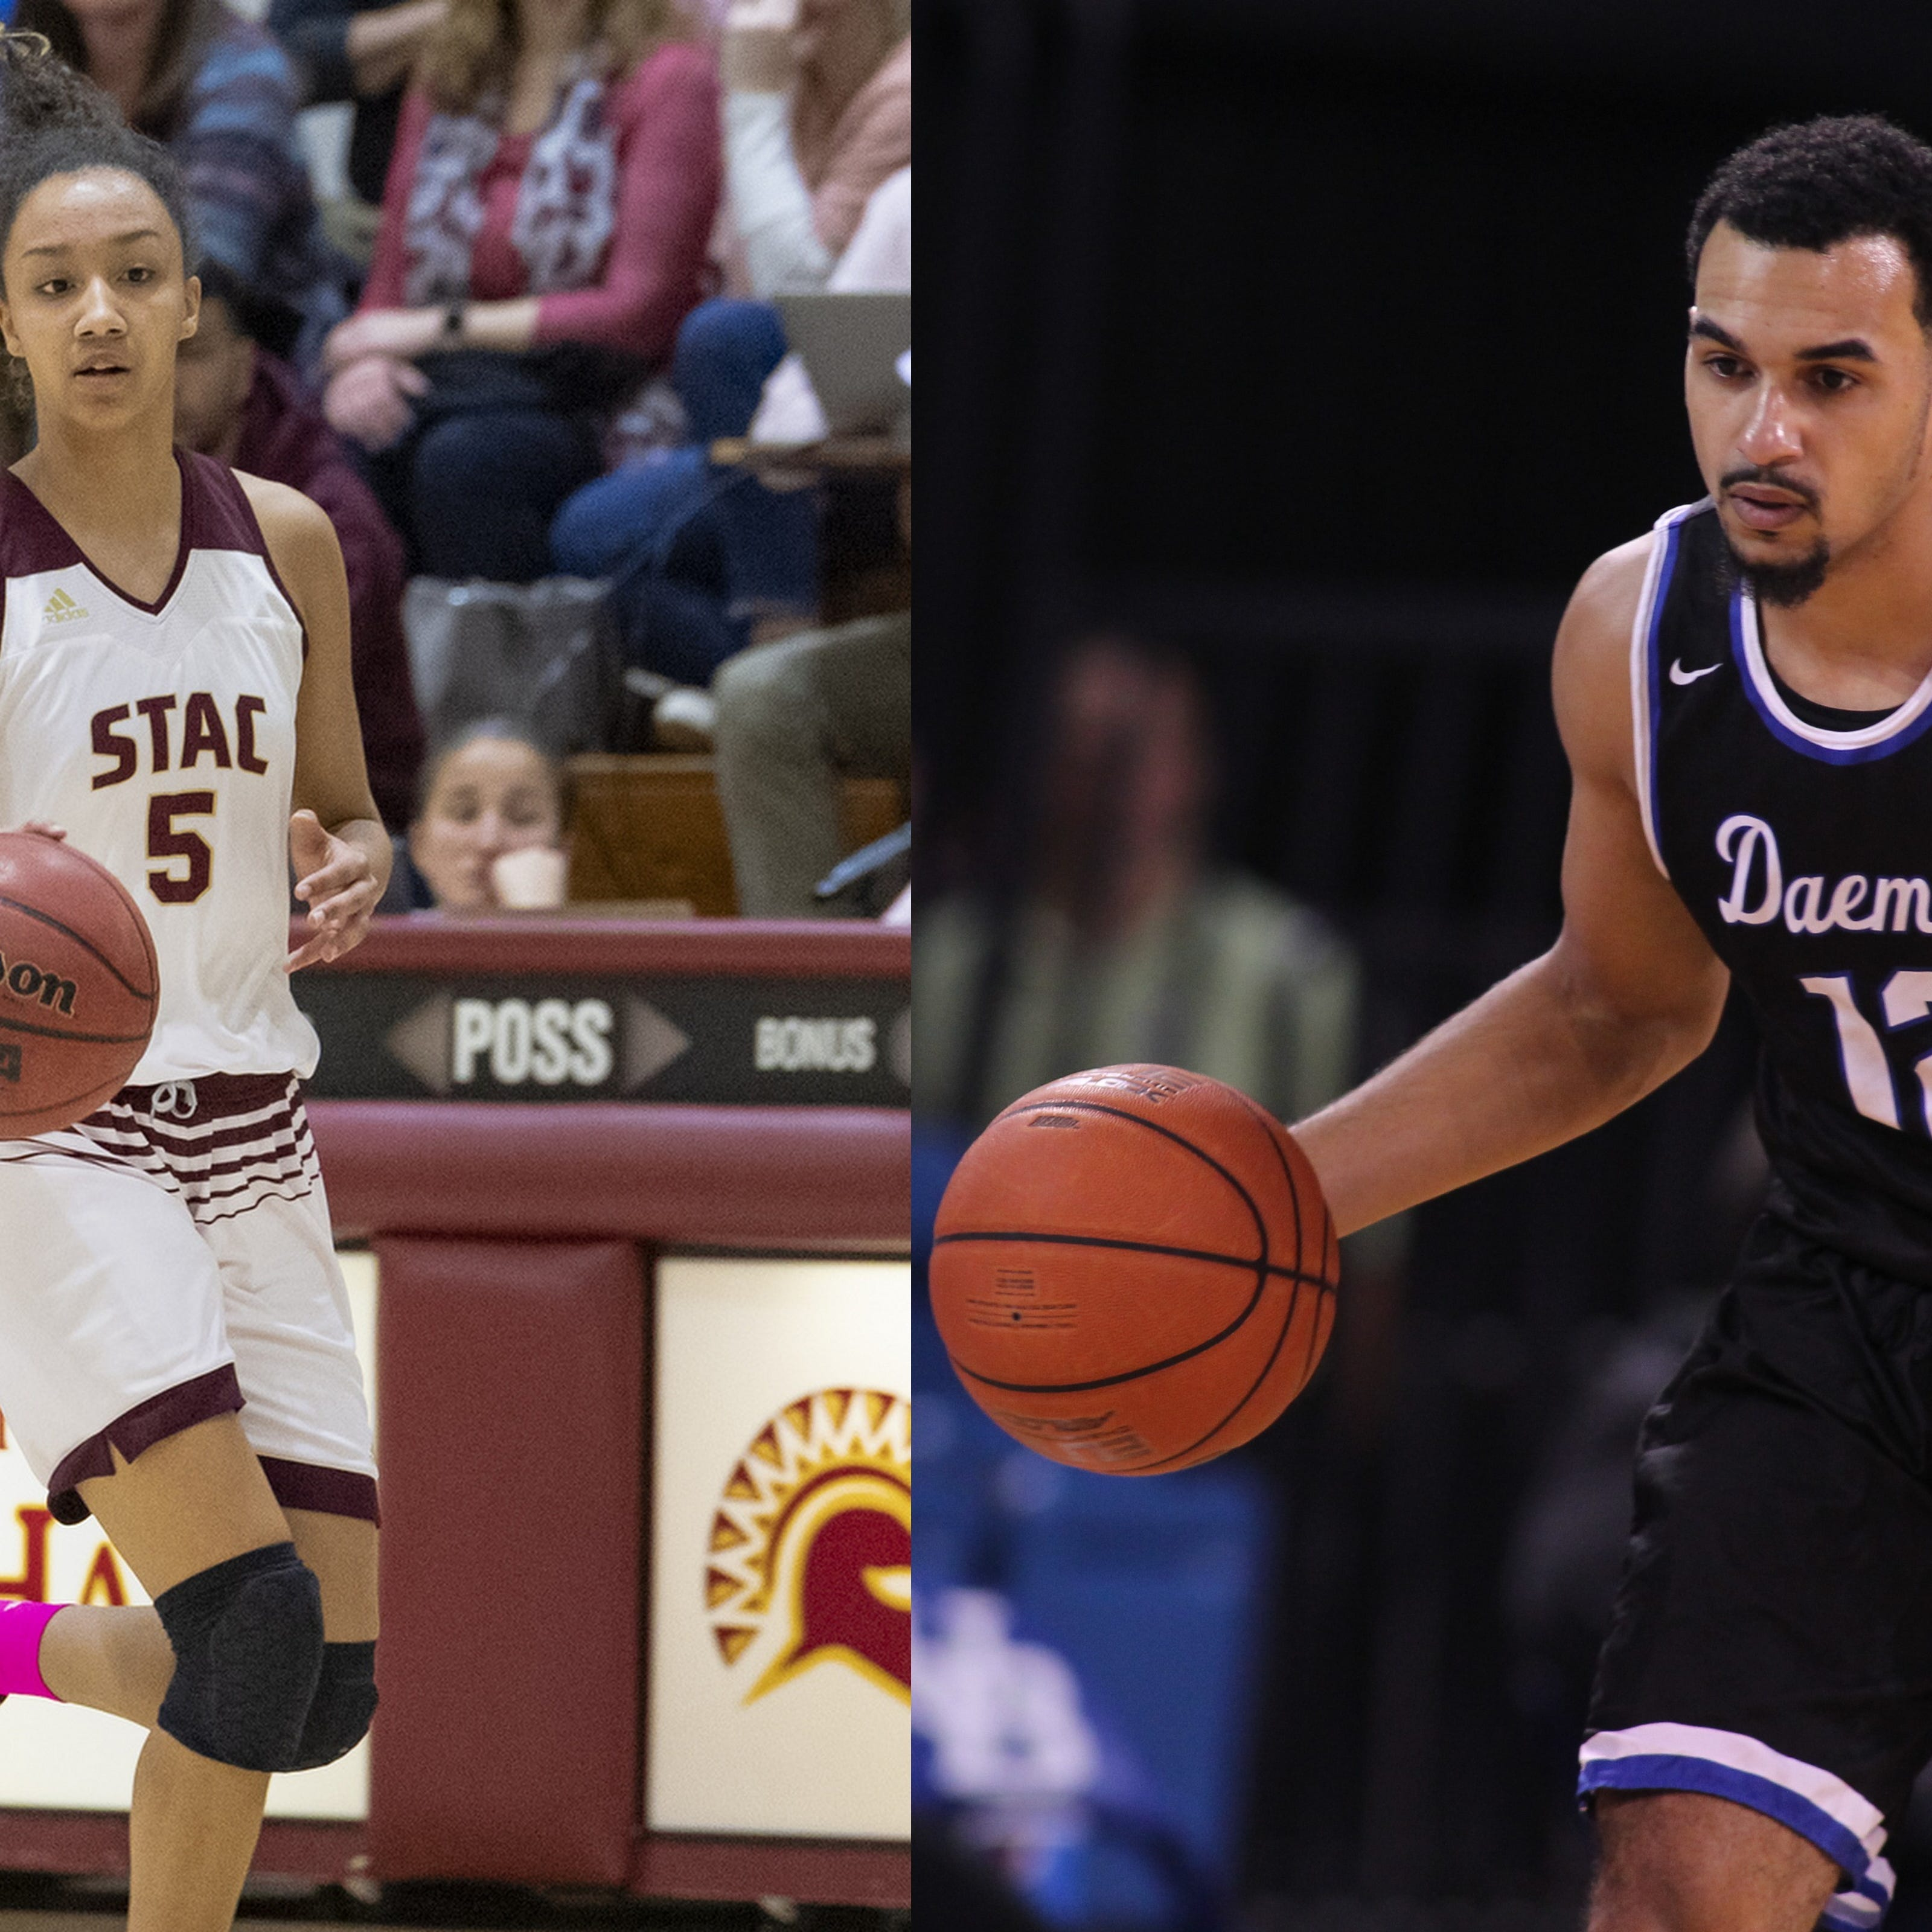 Former Elmira prep stars Thomas, Garvin to play in Division II basketball tourneys